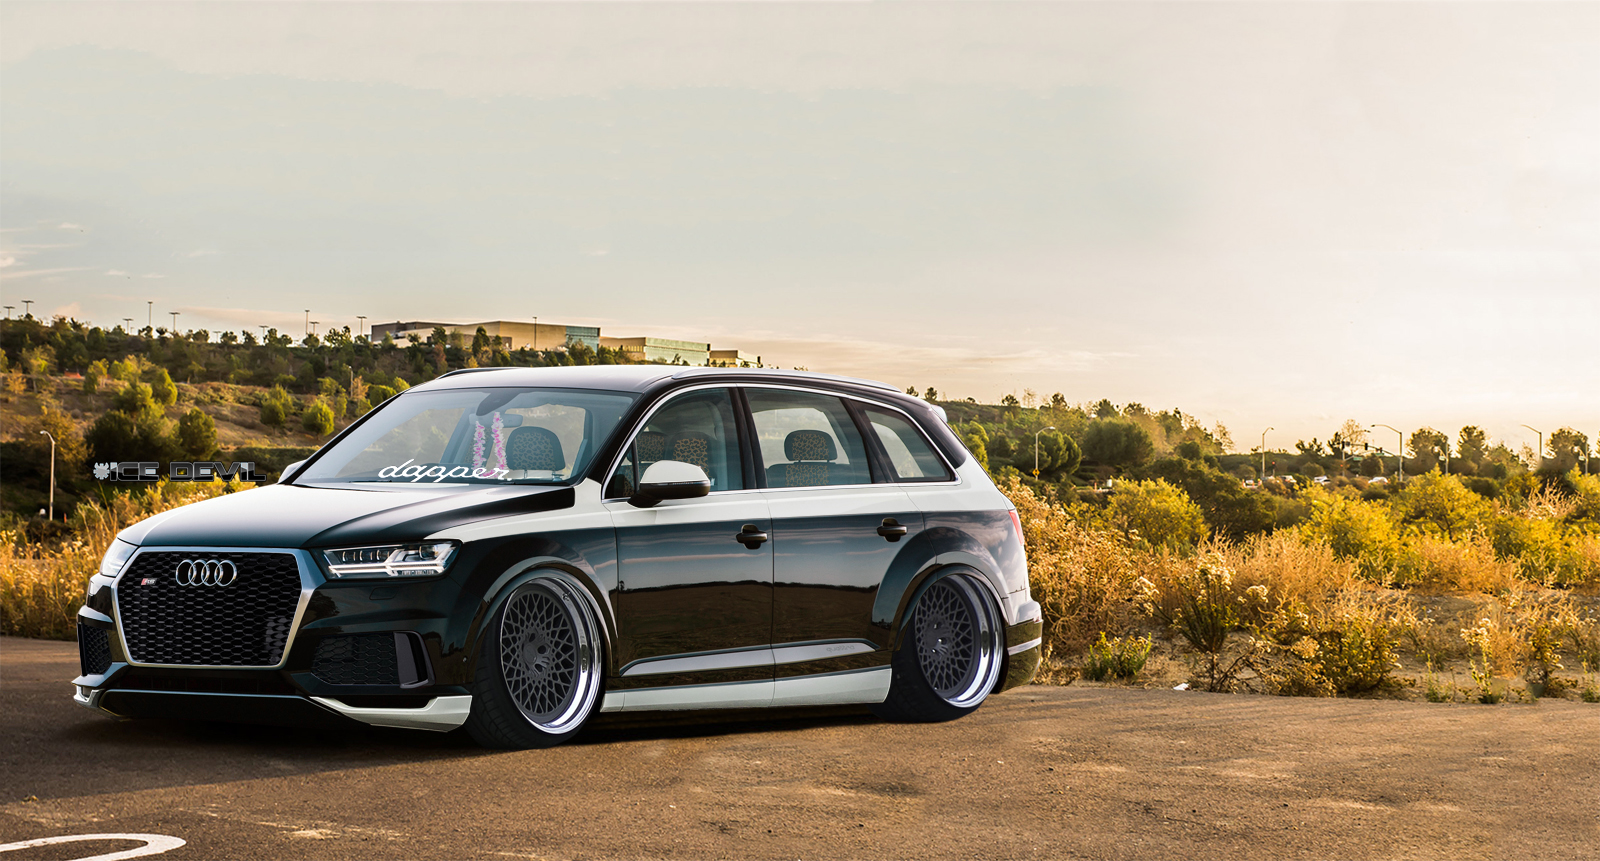 Dapper Audi Rsq7 By Klemola On Deviantart